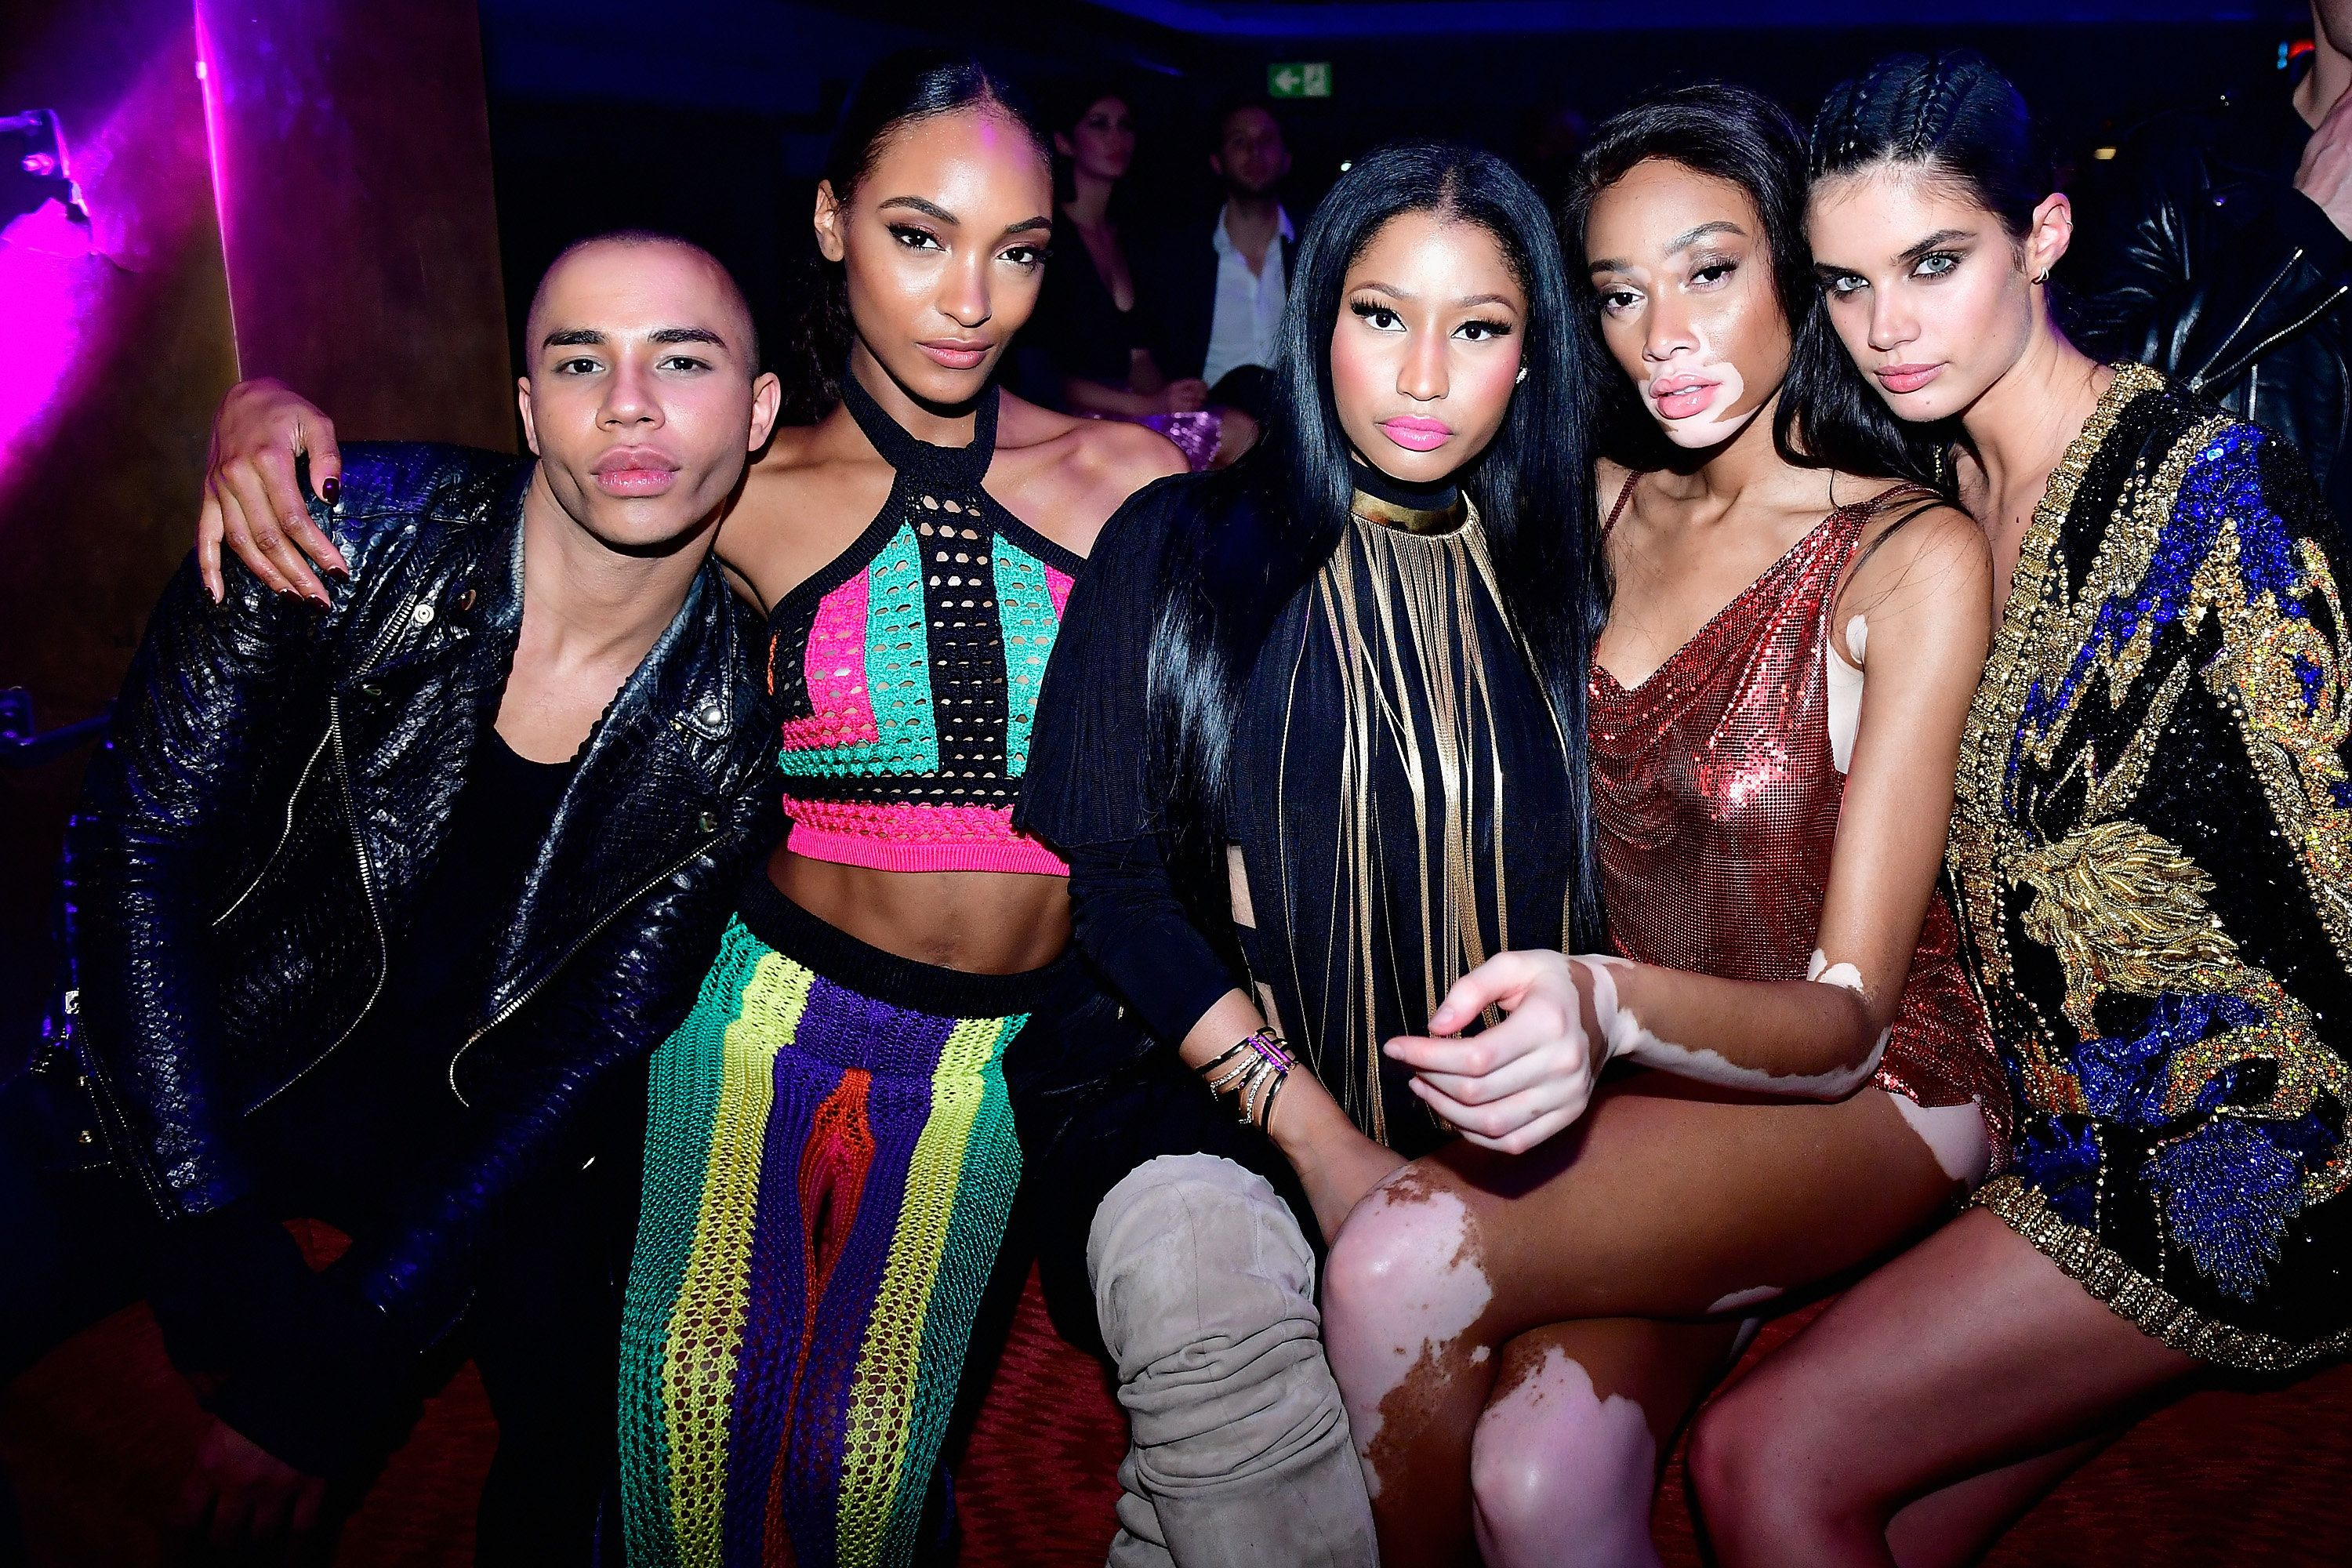 (L-R) Olivier Rousteing, Jourdan Dunn, Nicki Minaj, Winnie Harlow and Sara Sampaio attend Balmain aftershow...